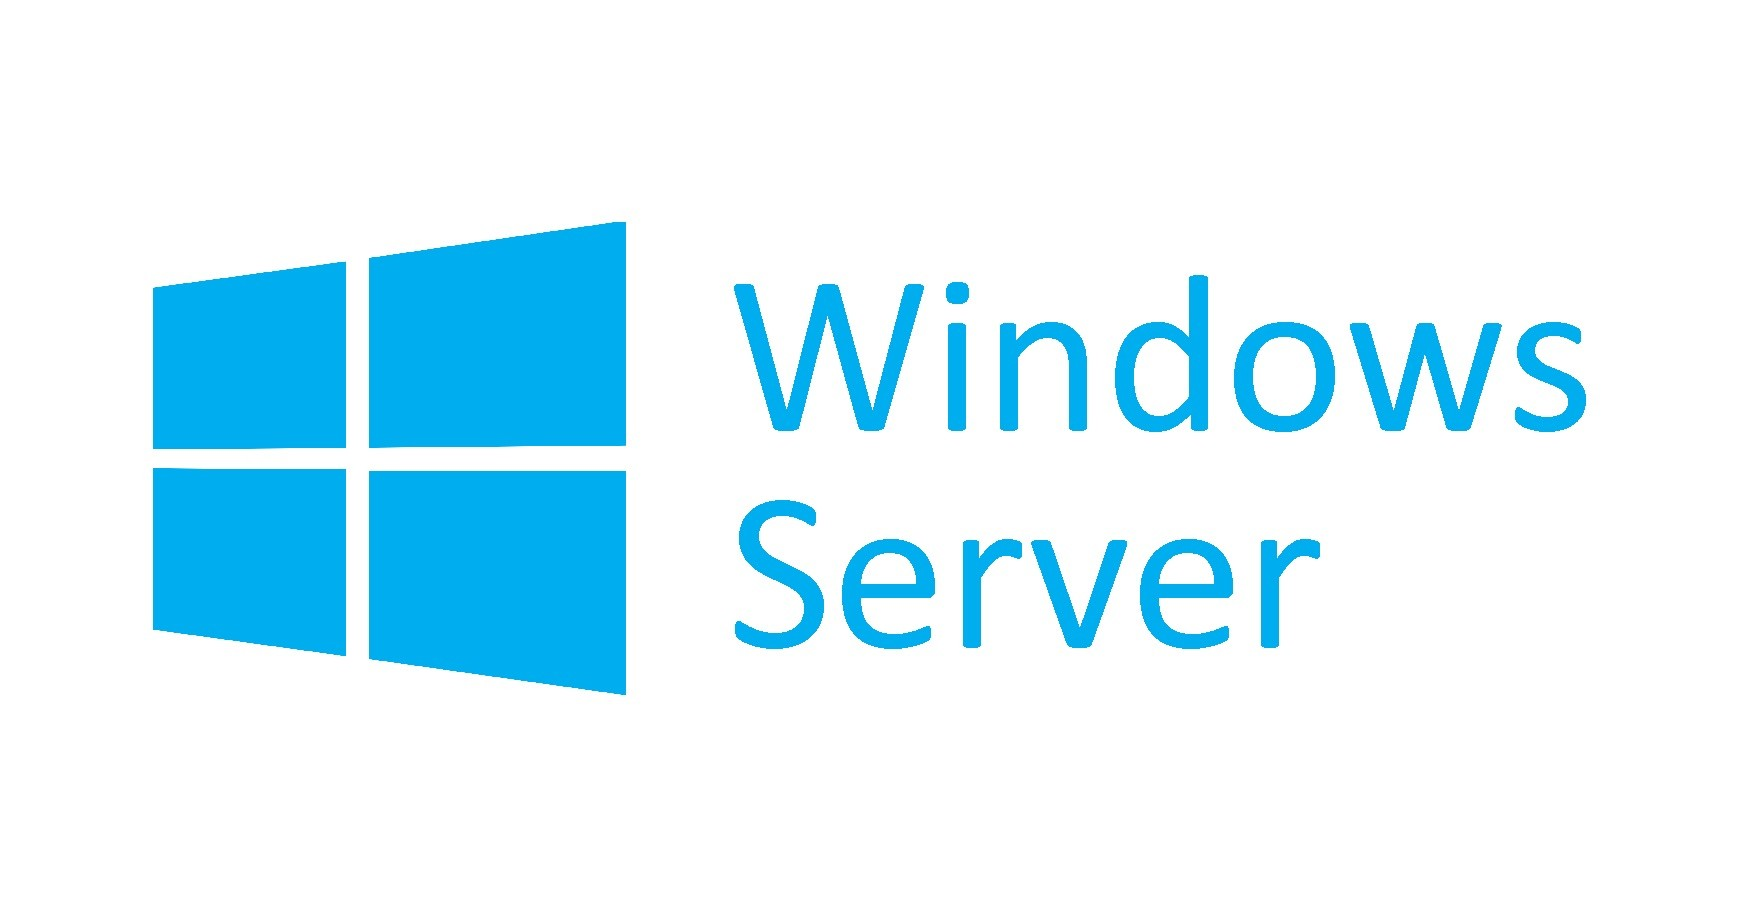 Windows Server Build 18298 Now Available for Download